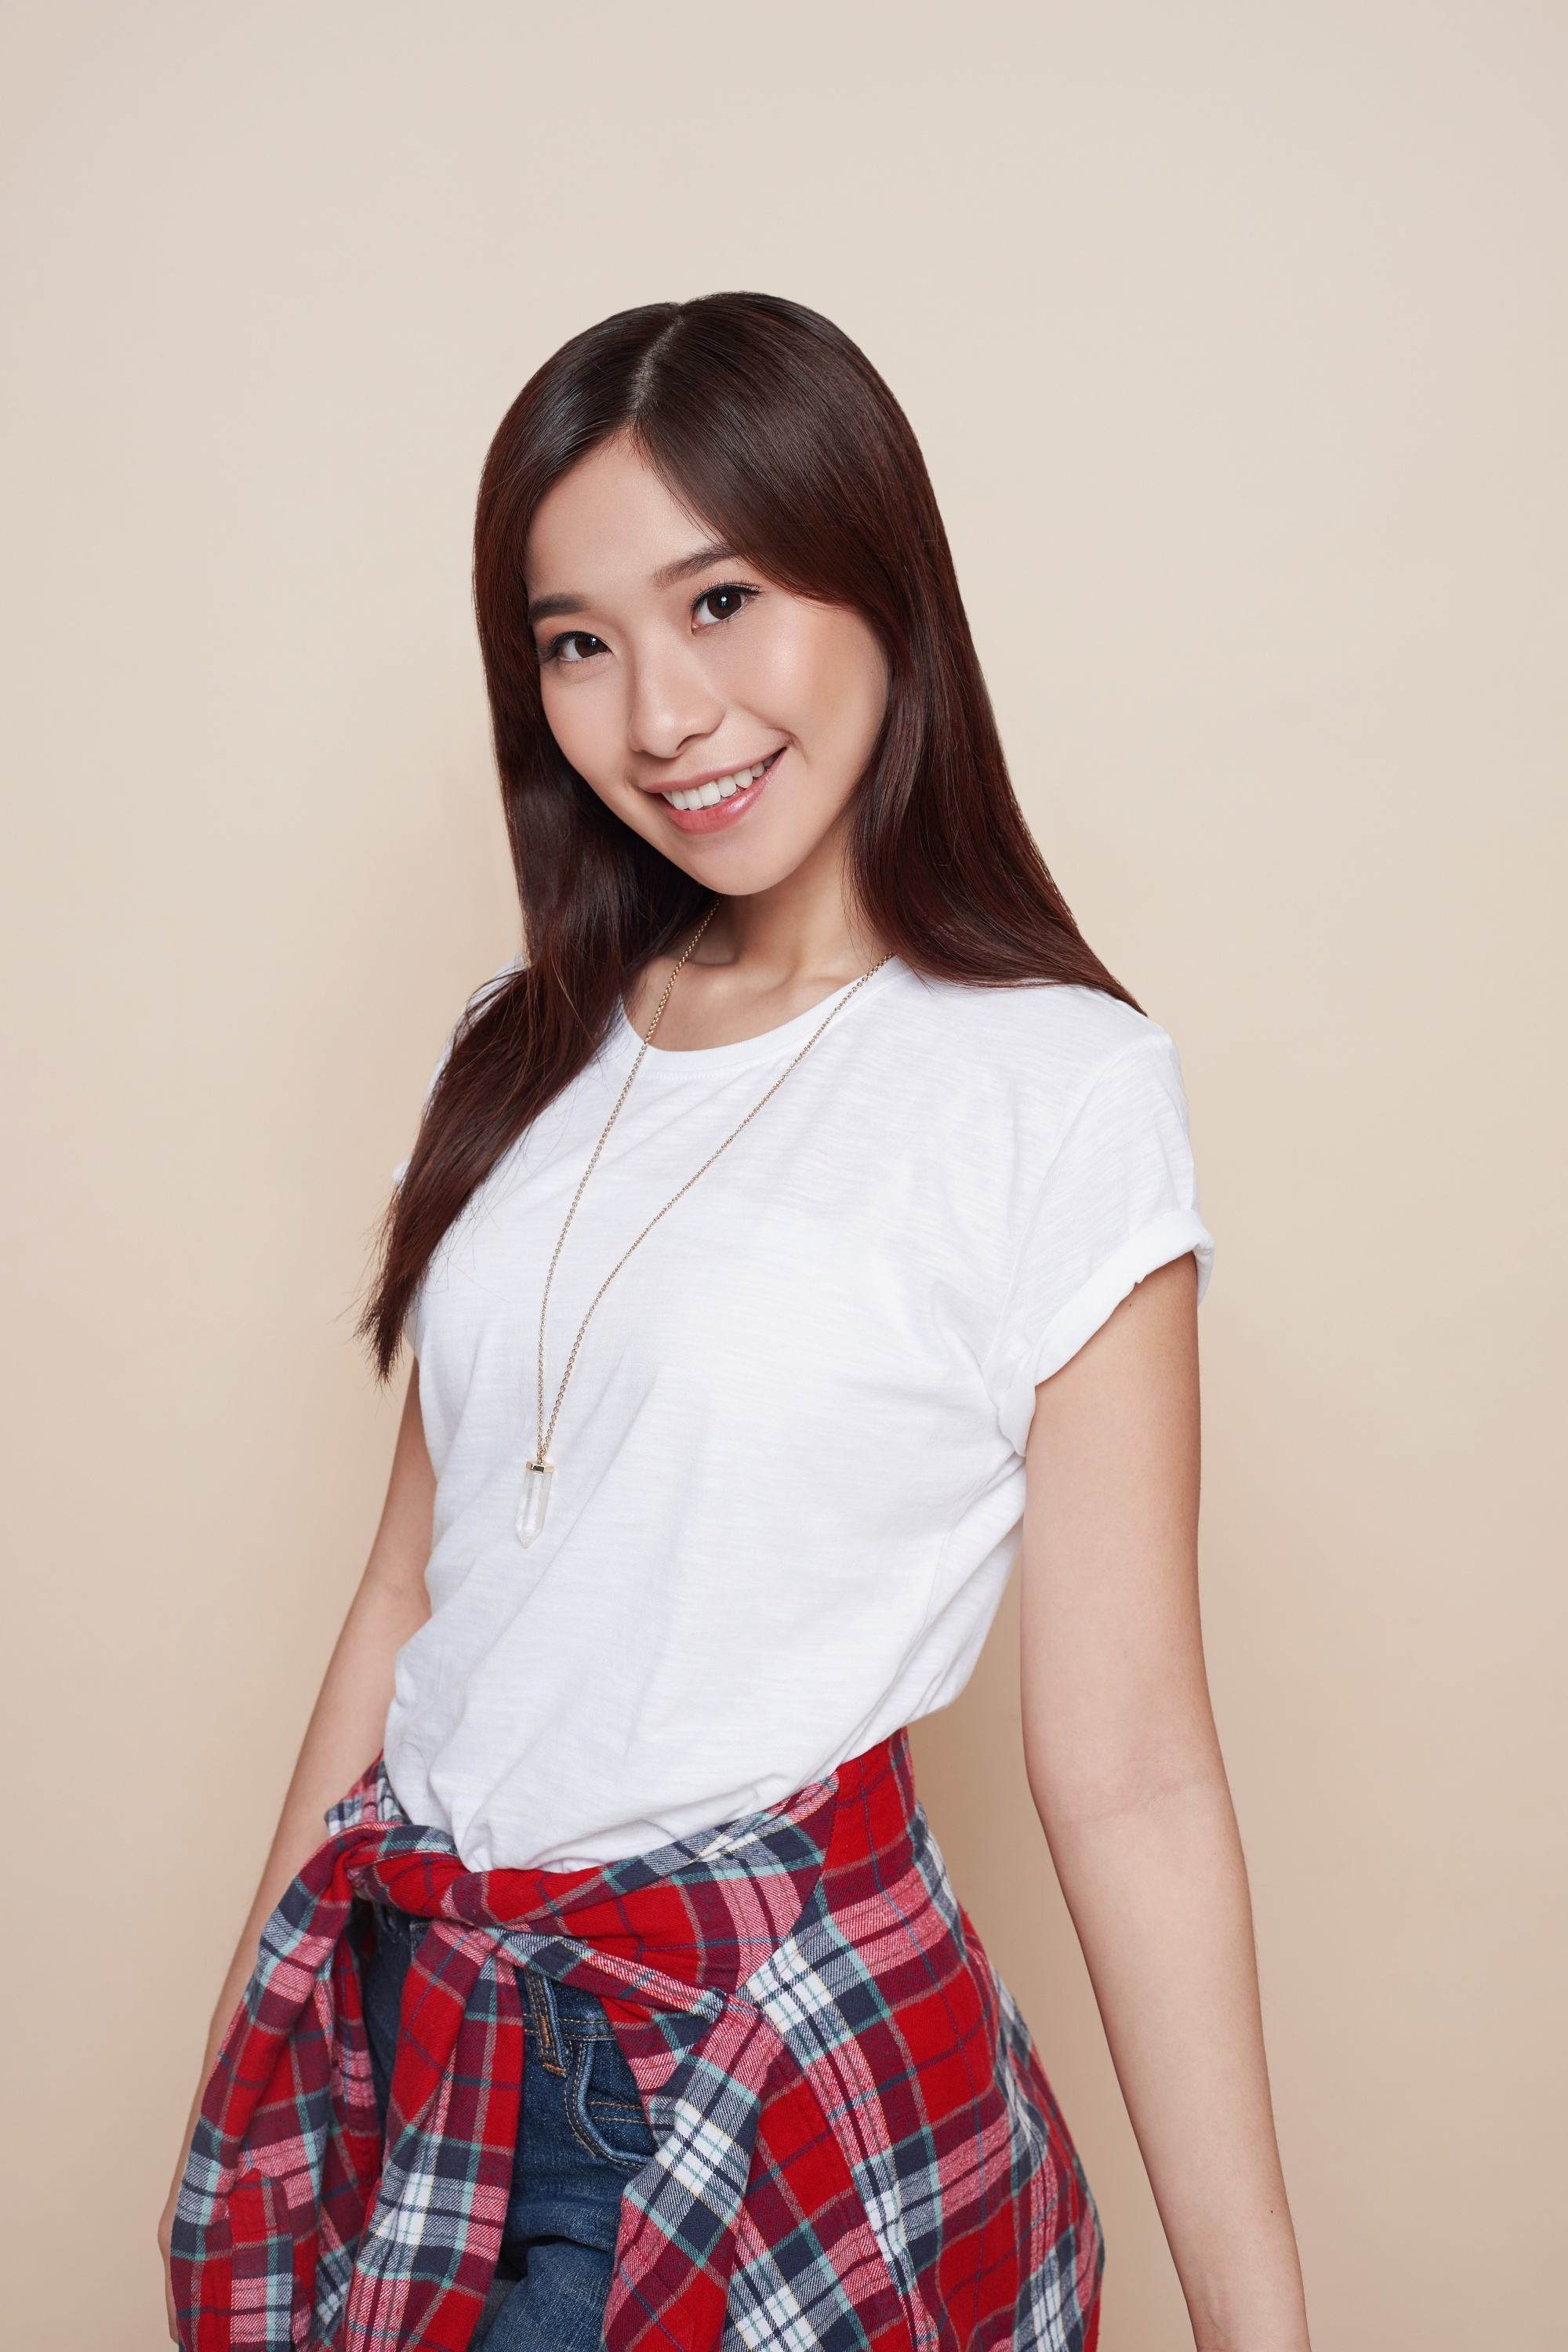 Blow dry your hair: Asian woman with long dark hair wearing a white shirt